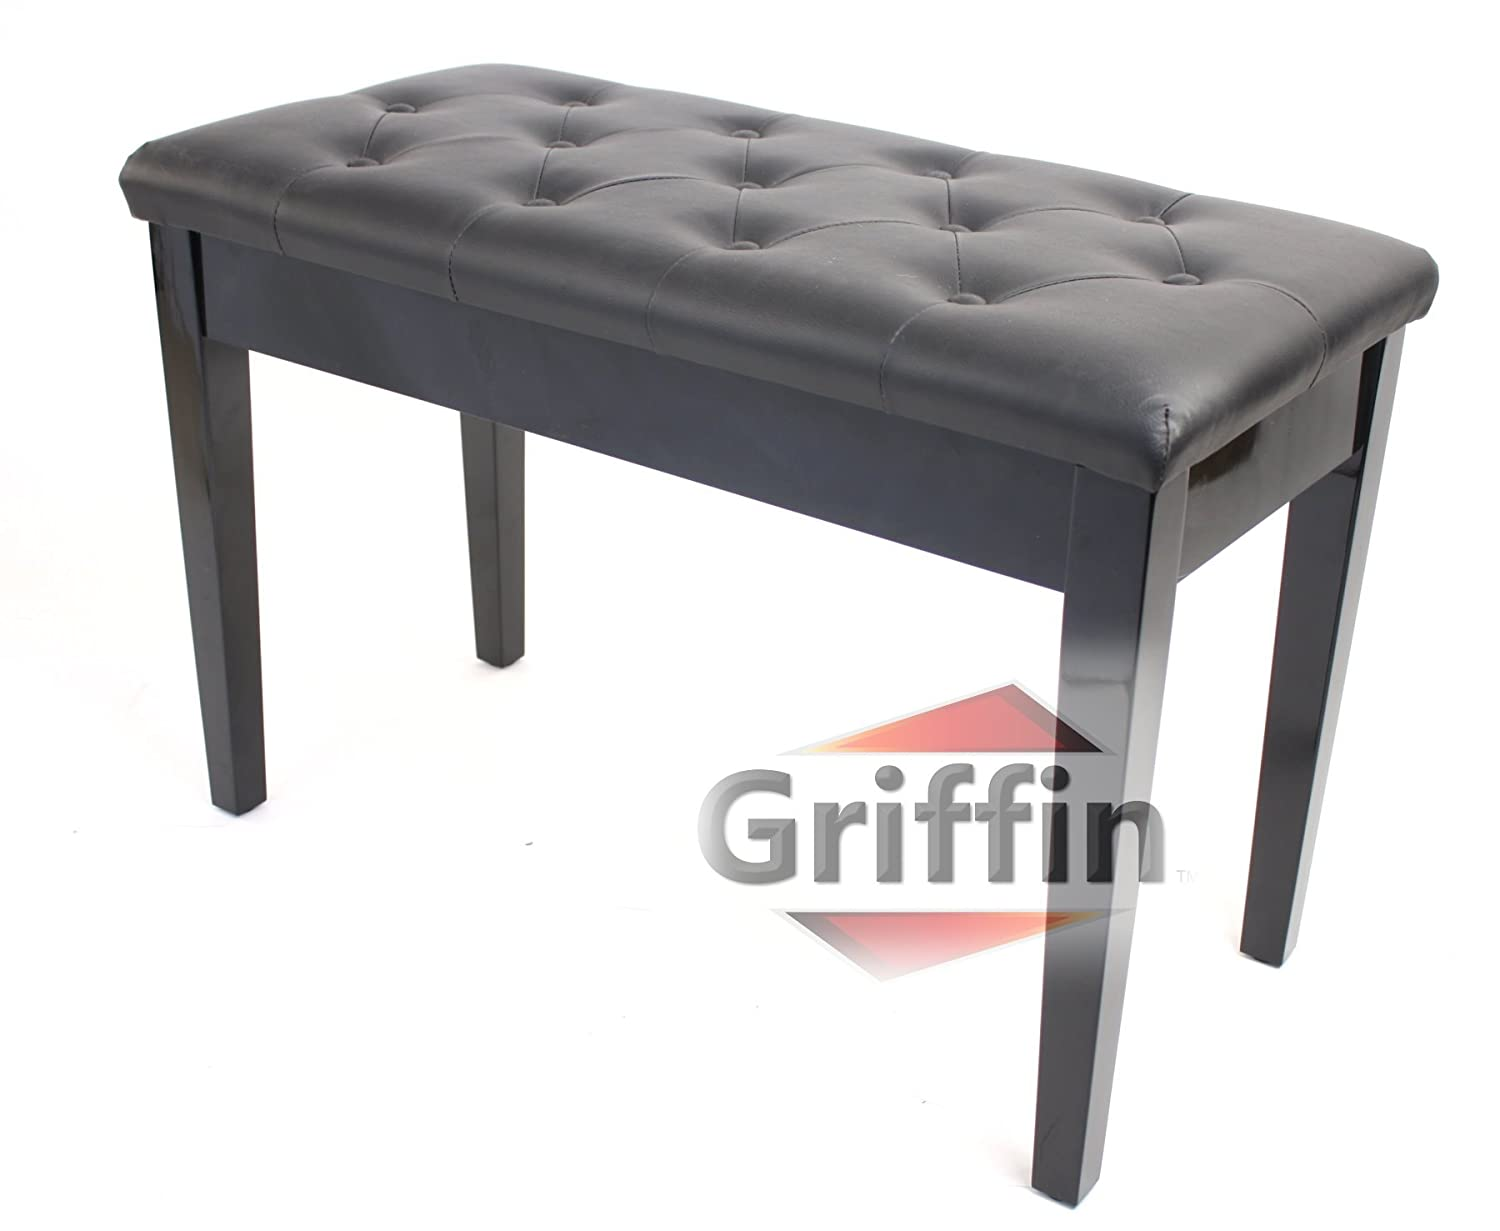 Antique piano chair - Premium Antique Black Piano Bench By Griffin Solid Wood Frame Luxurious Comfortable Leather Padded Duet Double Seat Ergonomic Keyboard Stool With